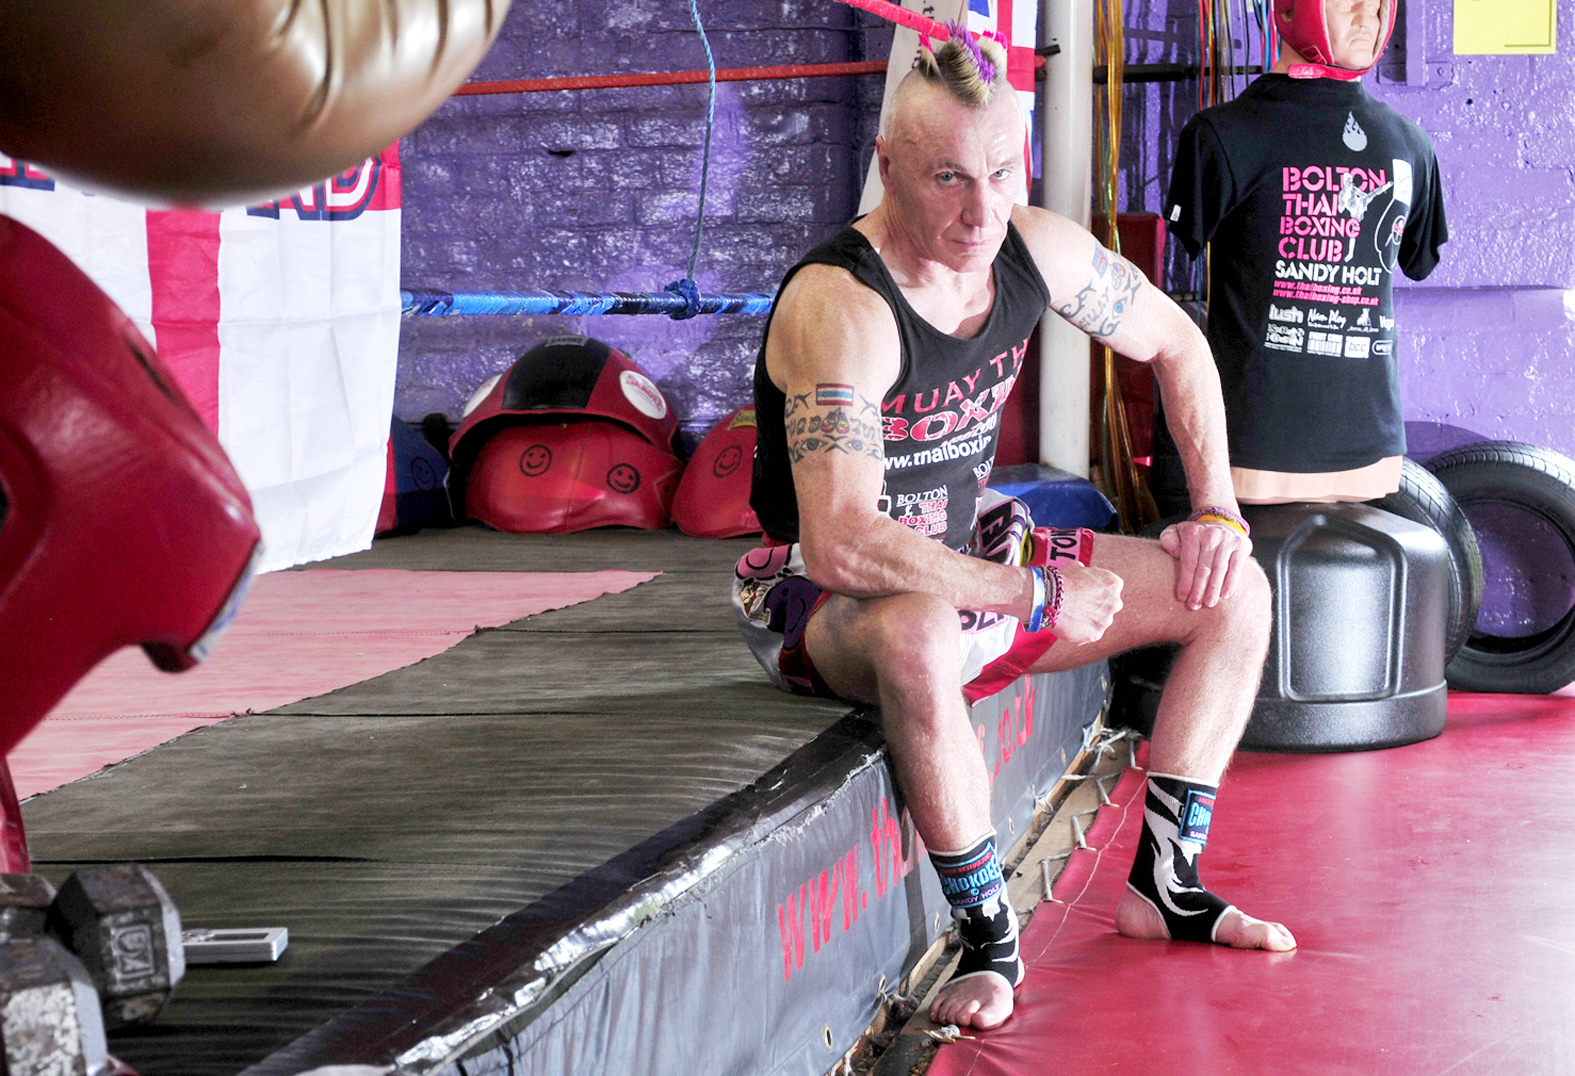 Sandy Holt at his Thai Boxing Club